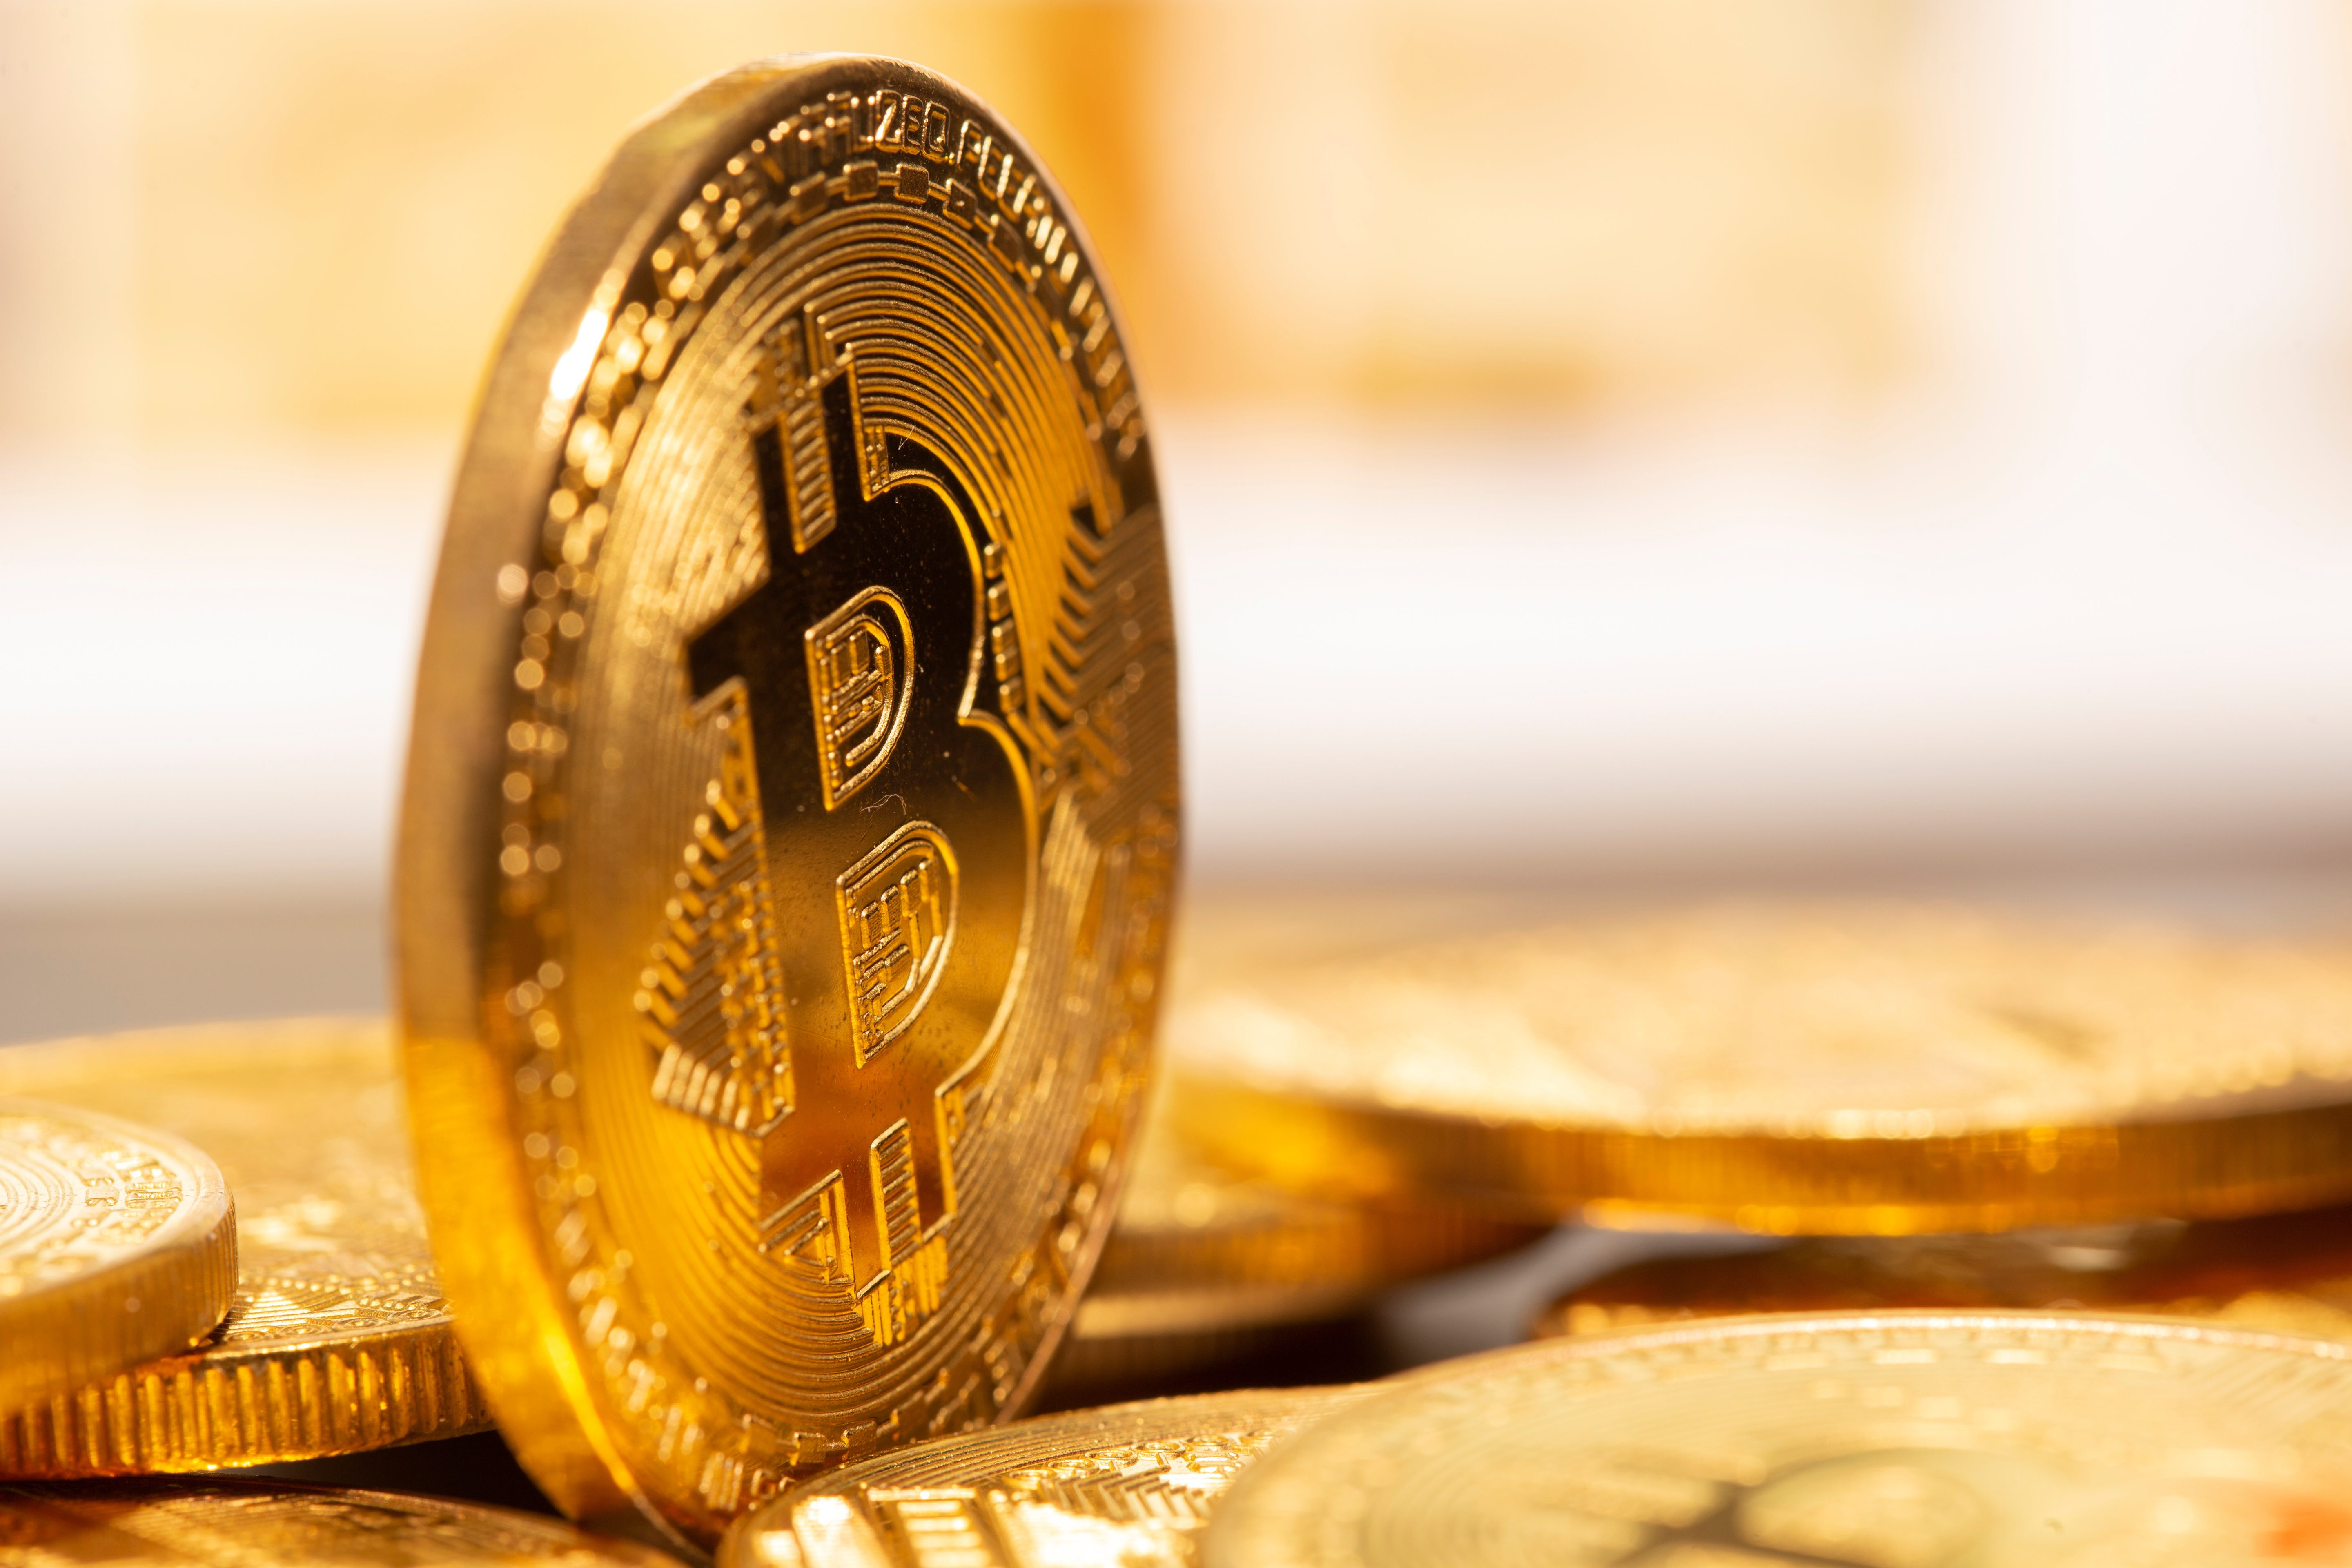 Bitcoin over Gold, London Investment Manager Reveals BTC Exposure